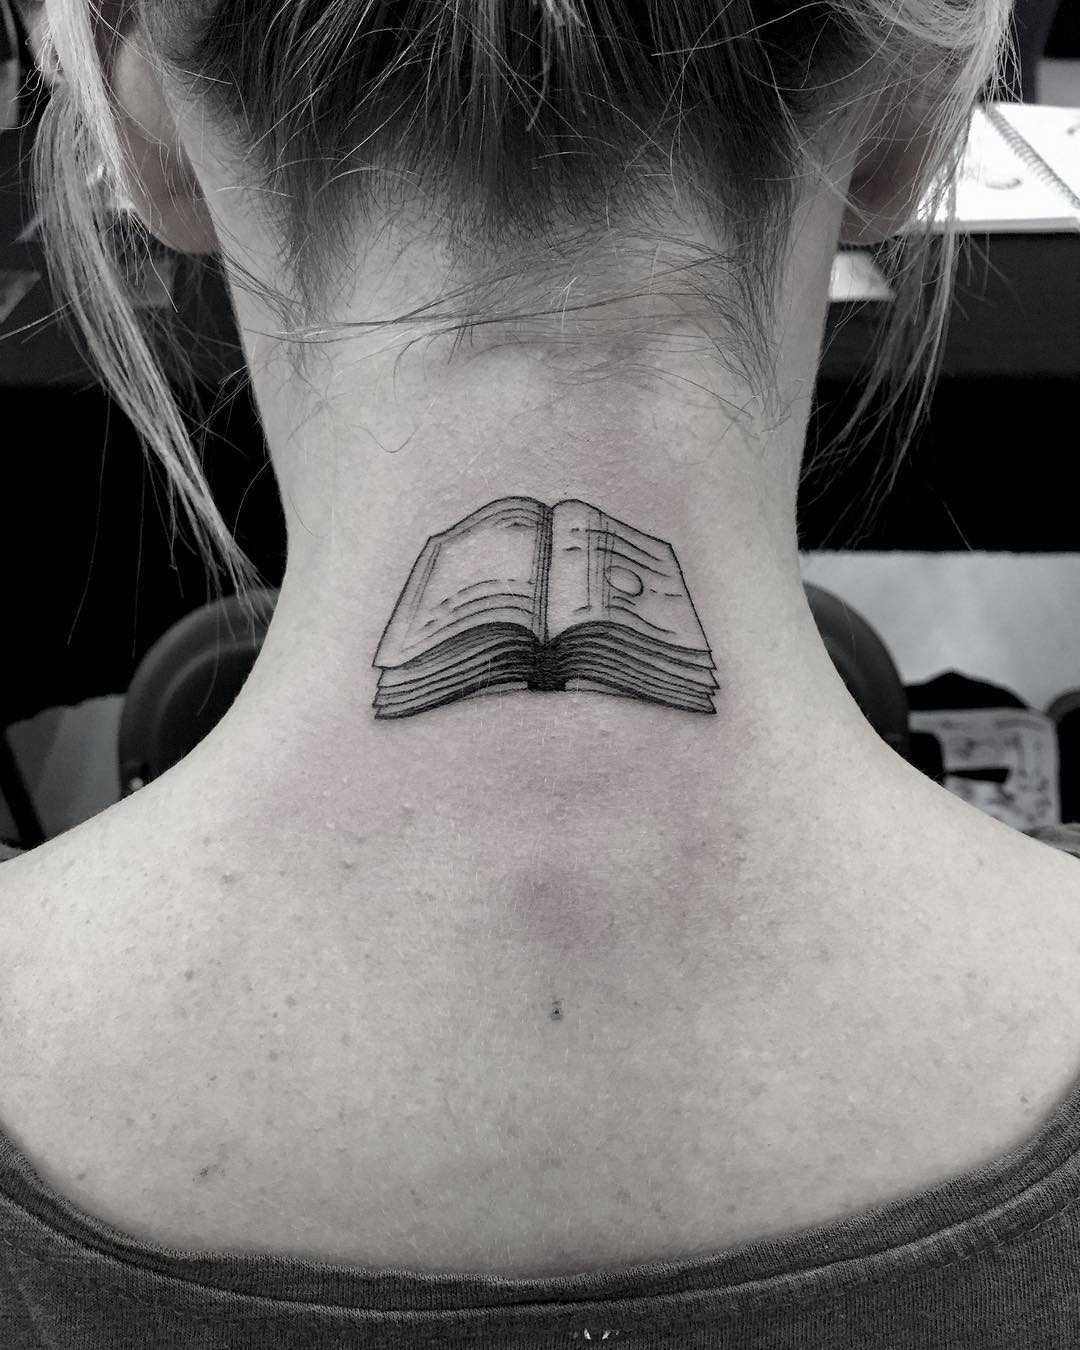 Small book tattoo on the neck